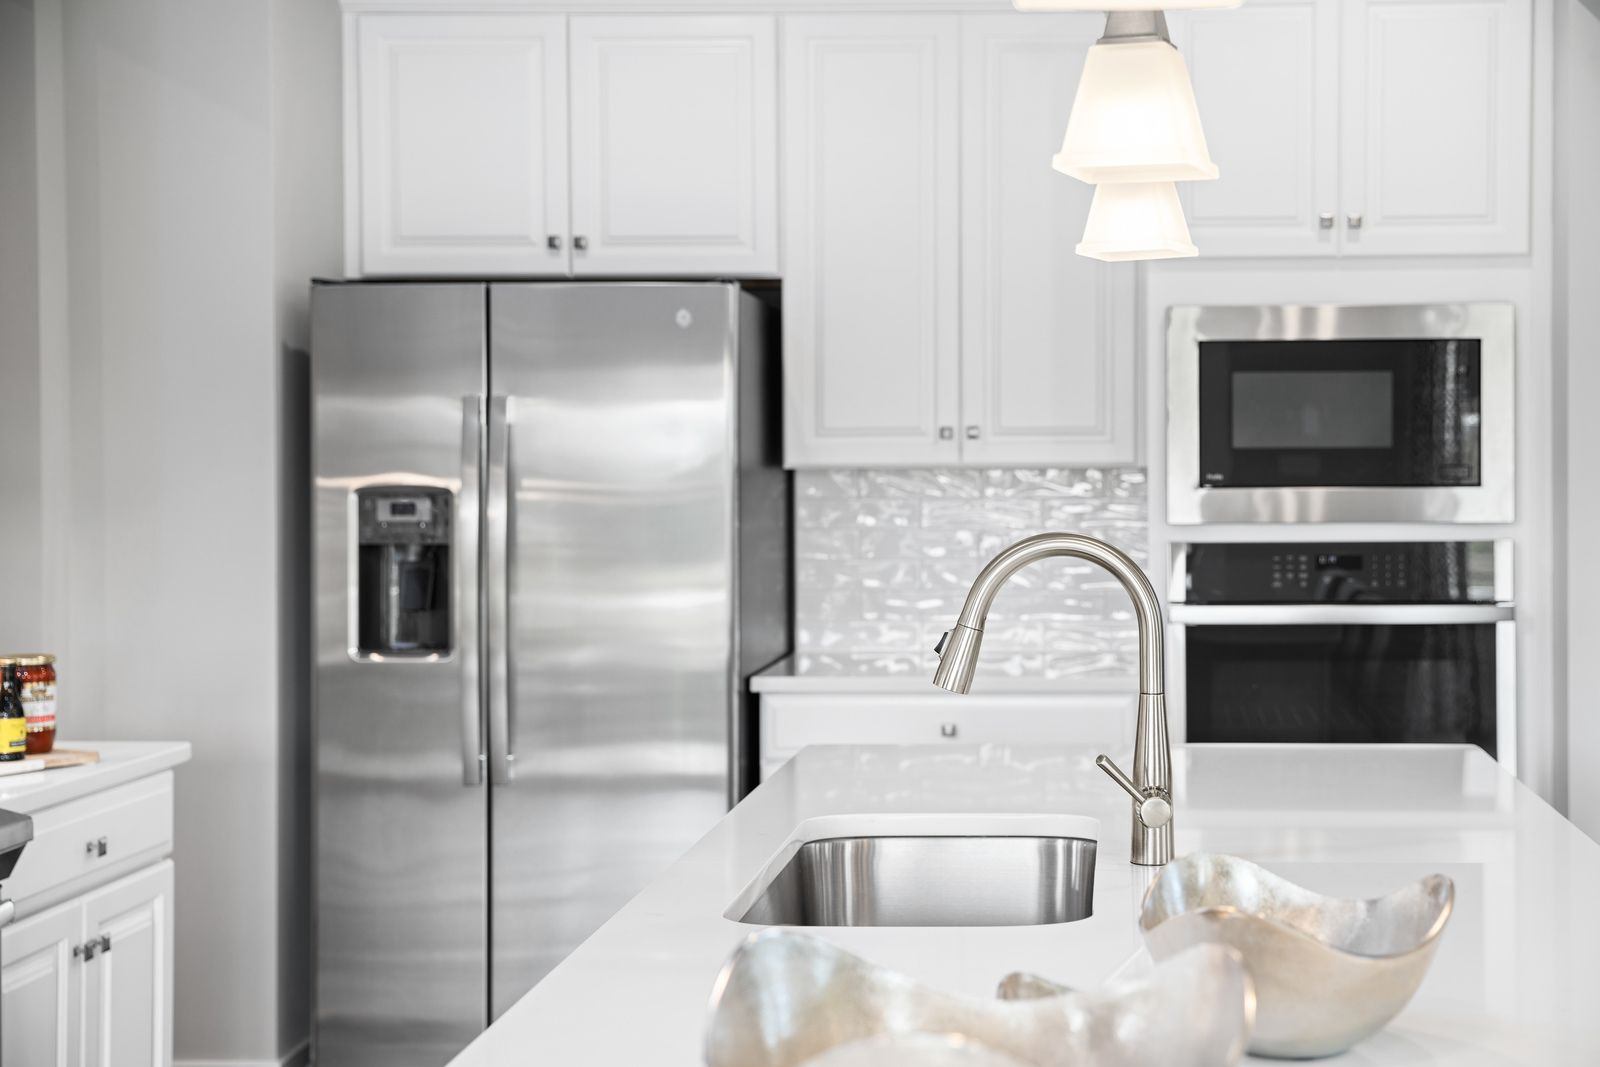 Kitchen featured in the Columbia By Ryan Homes in Philadelphia, PA